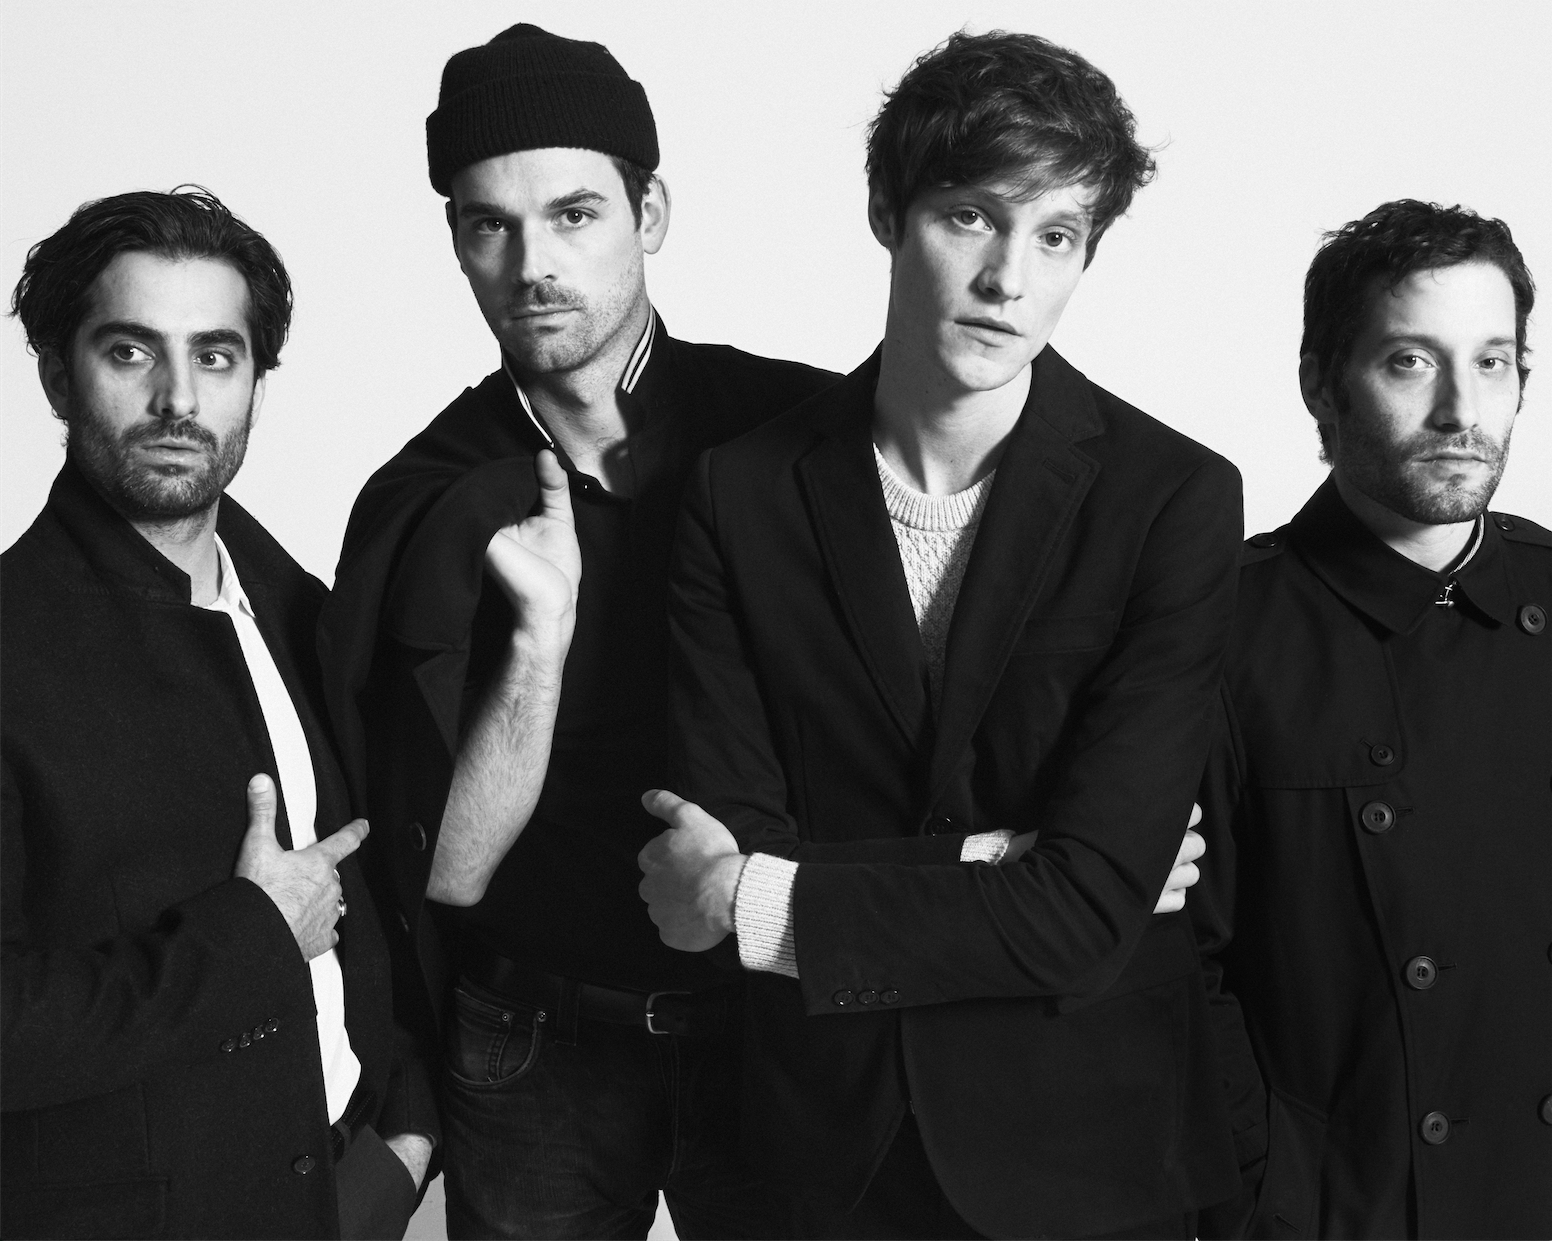 Talking About NYC And 'On Desire'  With Drowners' Matt Hitt